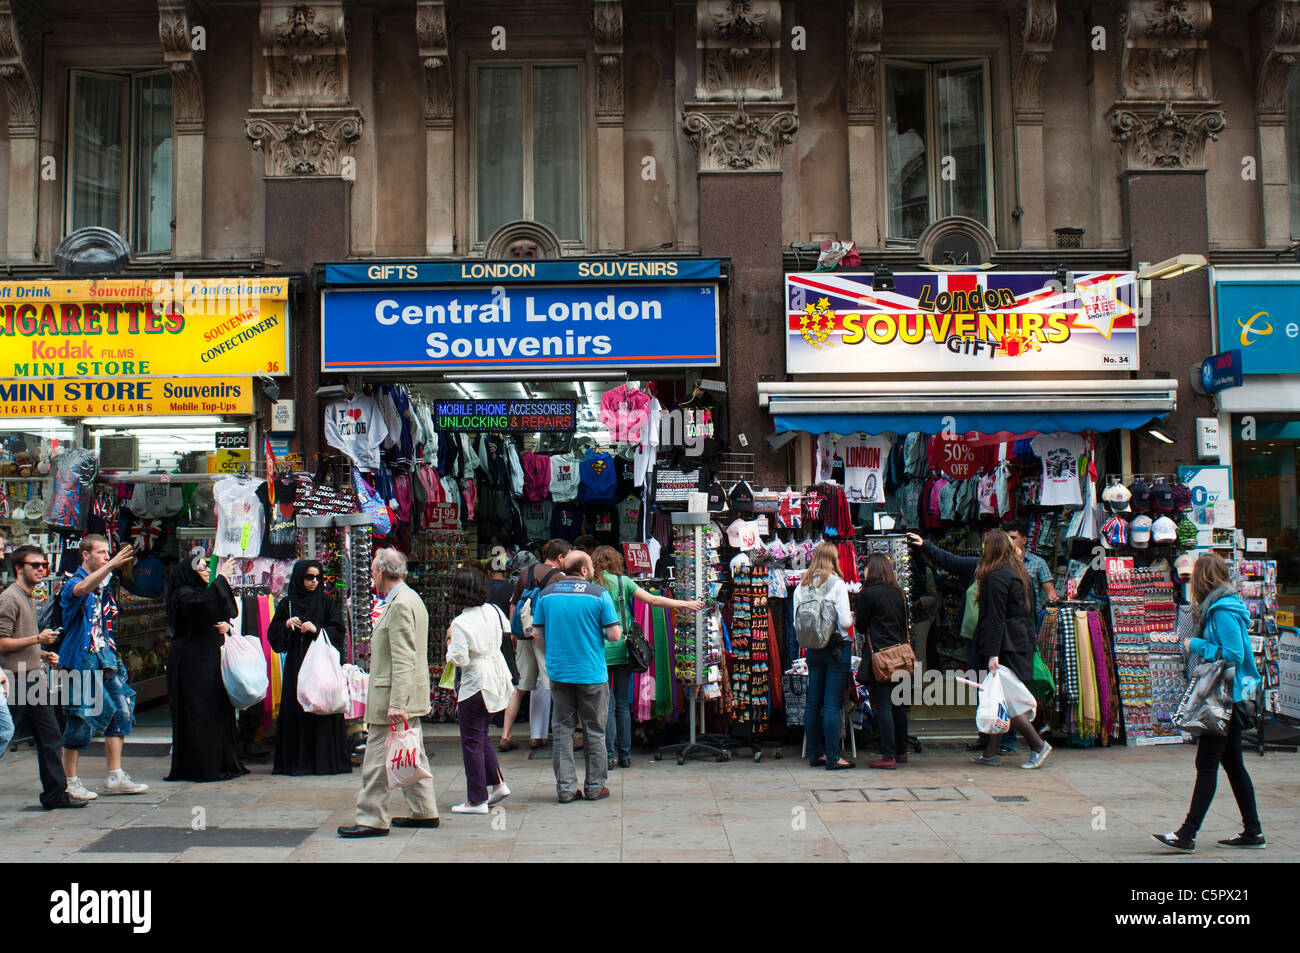 Street Scene of People / Tourists at the Souvenir Shops, Leicester Square, London - Stock Image